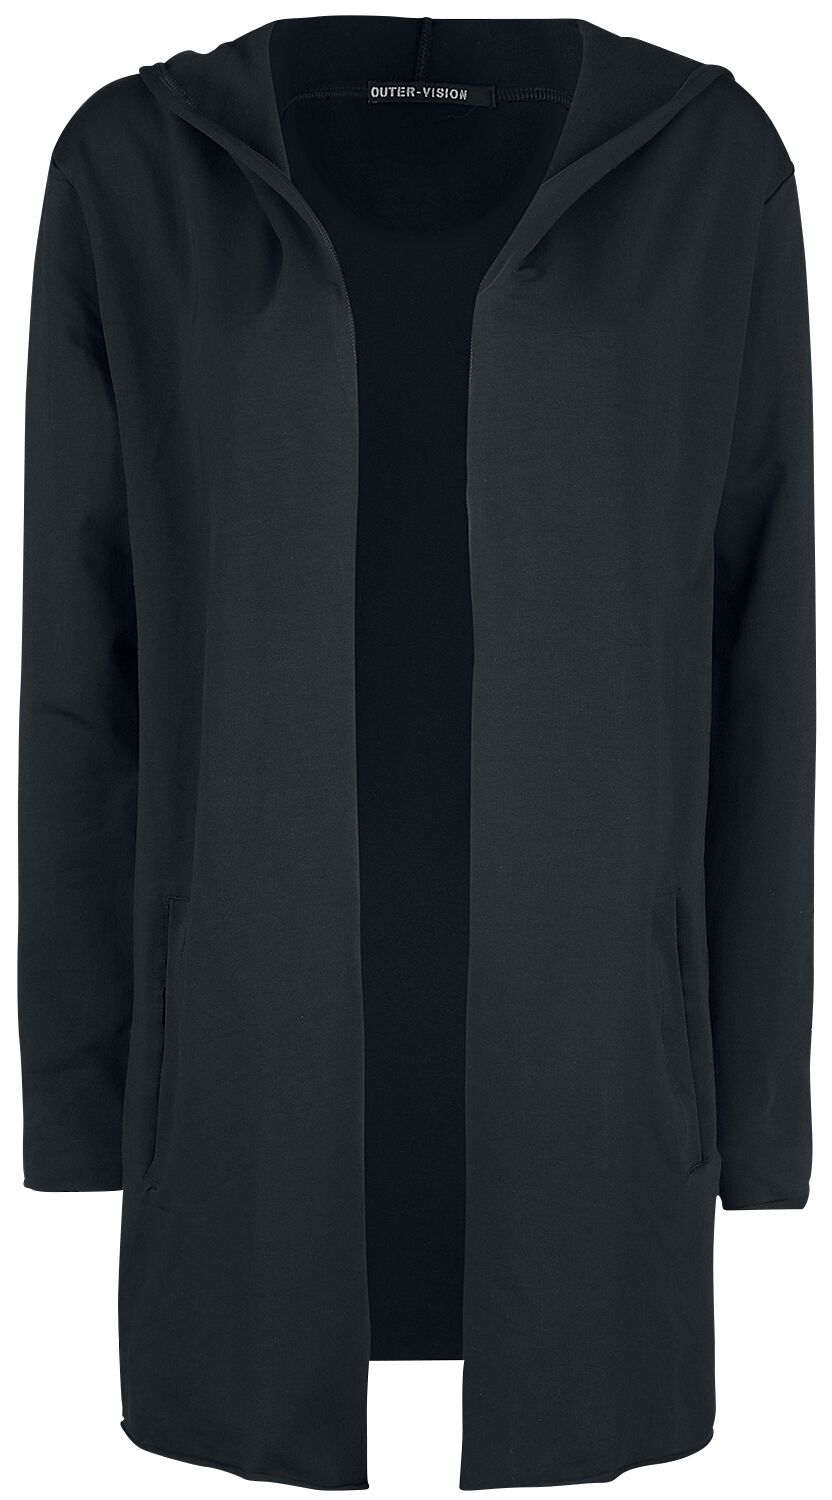 Image of Outer Vision Cardigan Monza Cardigan schwarz